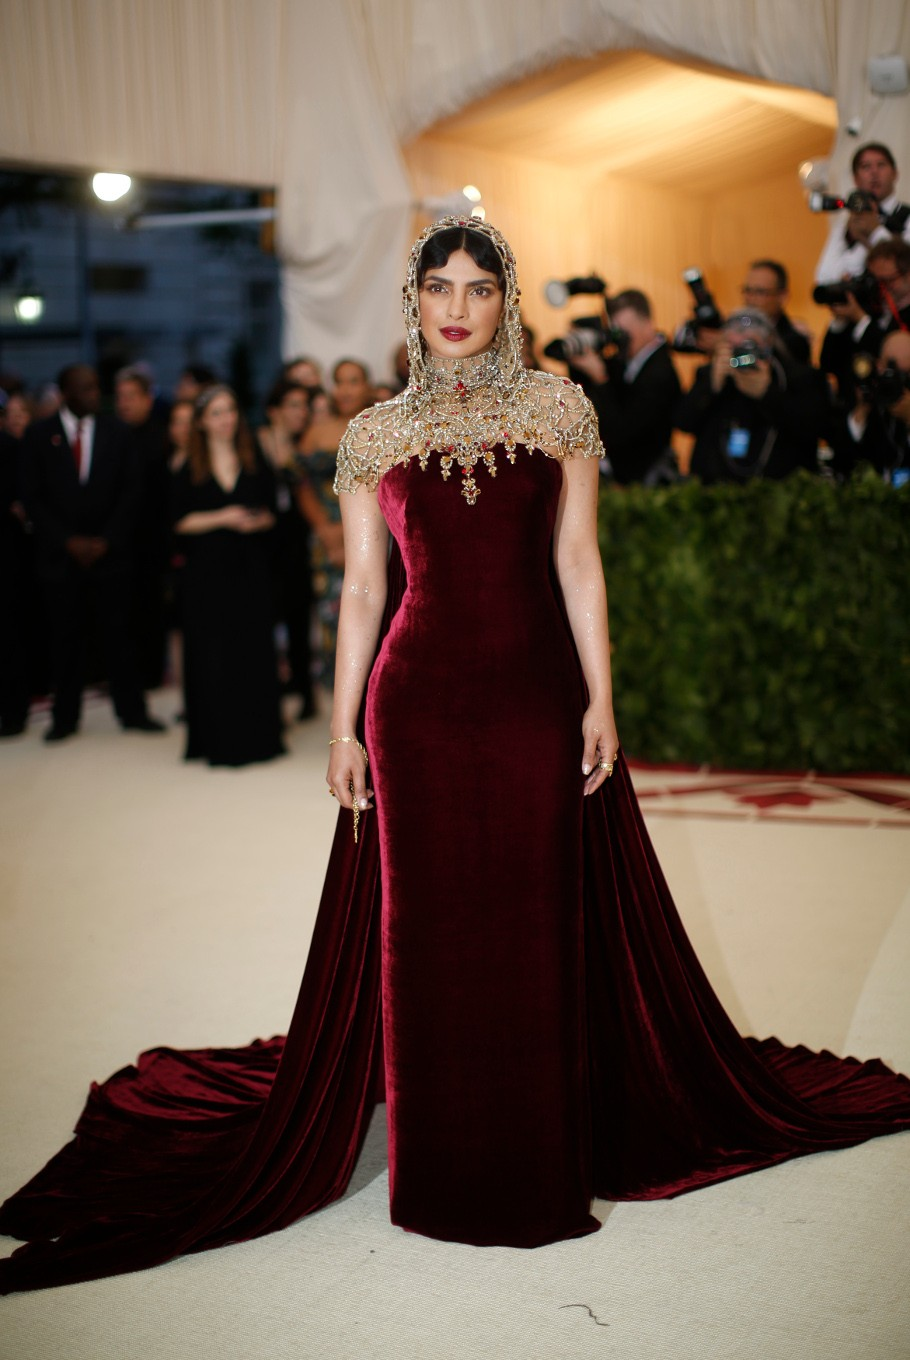 Actress Priyanka Chopra arrives at the Metropolitan Museum of Art Costume Institute Gala (Met Gala) to celebrate the opening of 'Heavenly Bodies: Fashion and the Catholic Imagination' in the Manhattan borough of New York, U.S., May 7, 2018.